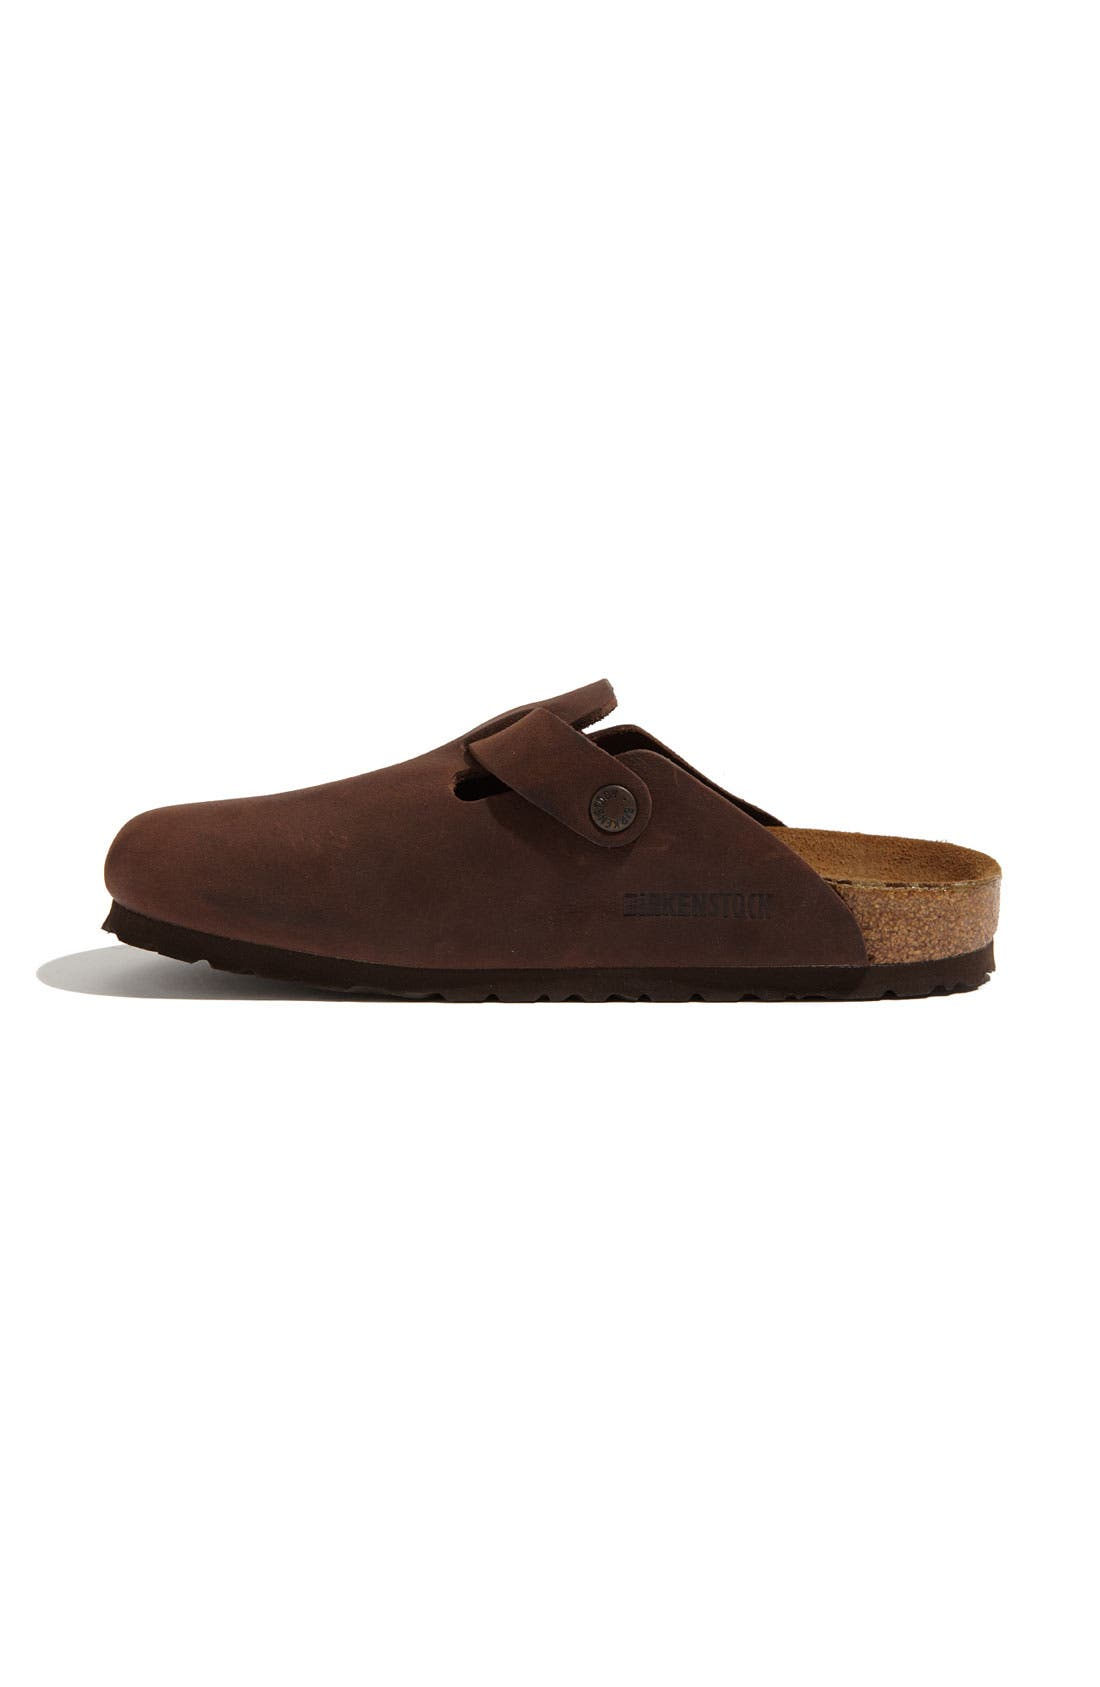 'Boston' Classic Oiled Leather Clog,                             Alternate thumbnail 39, color,